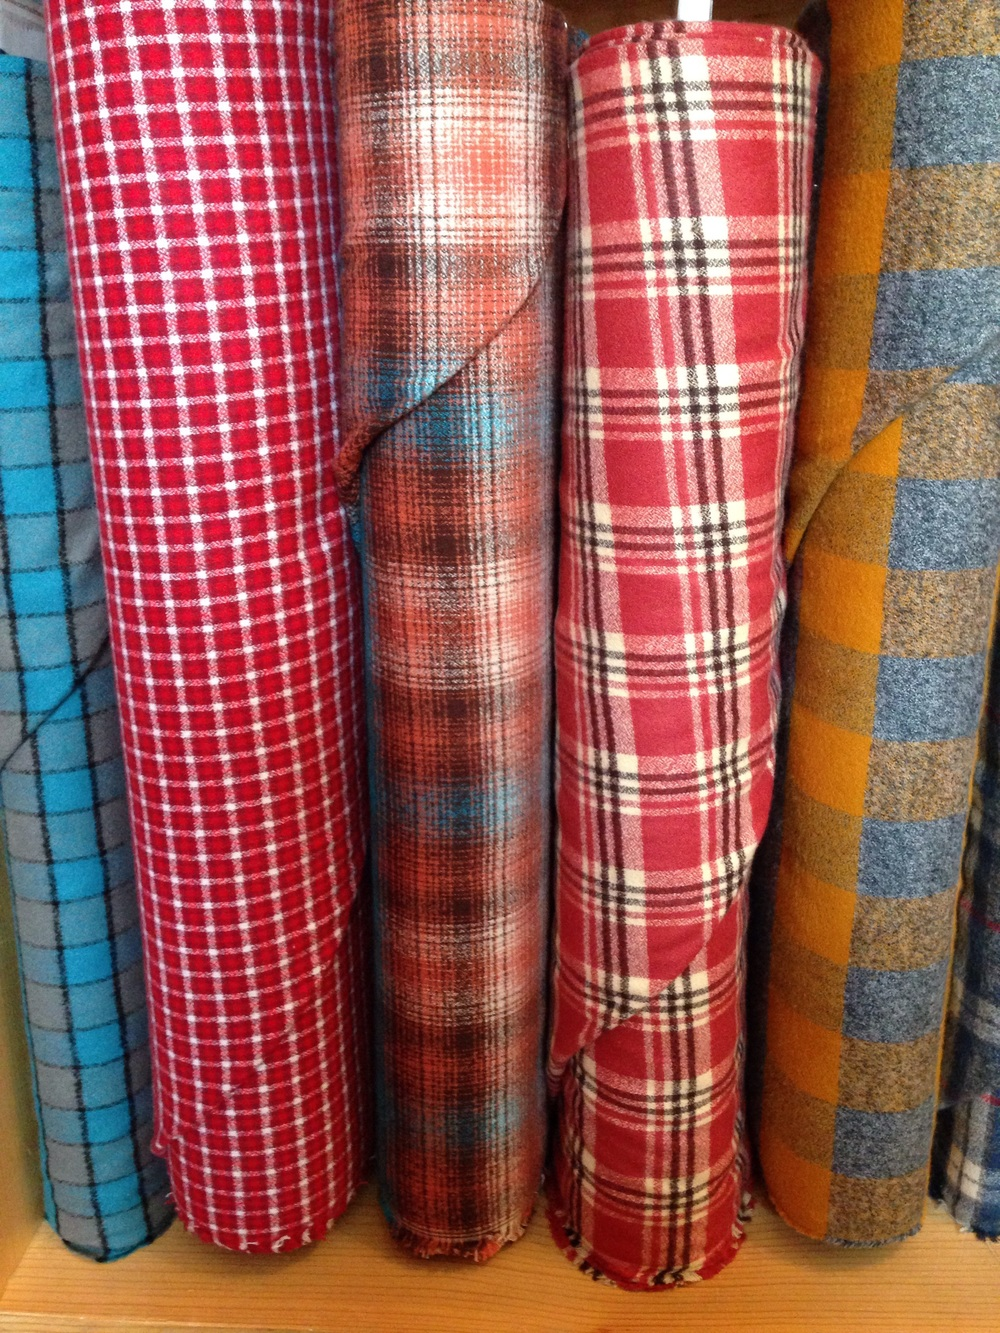 Plaid flannels - perfect for fall